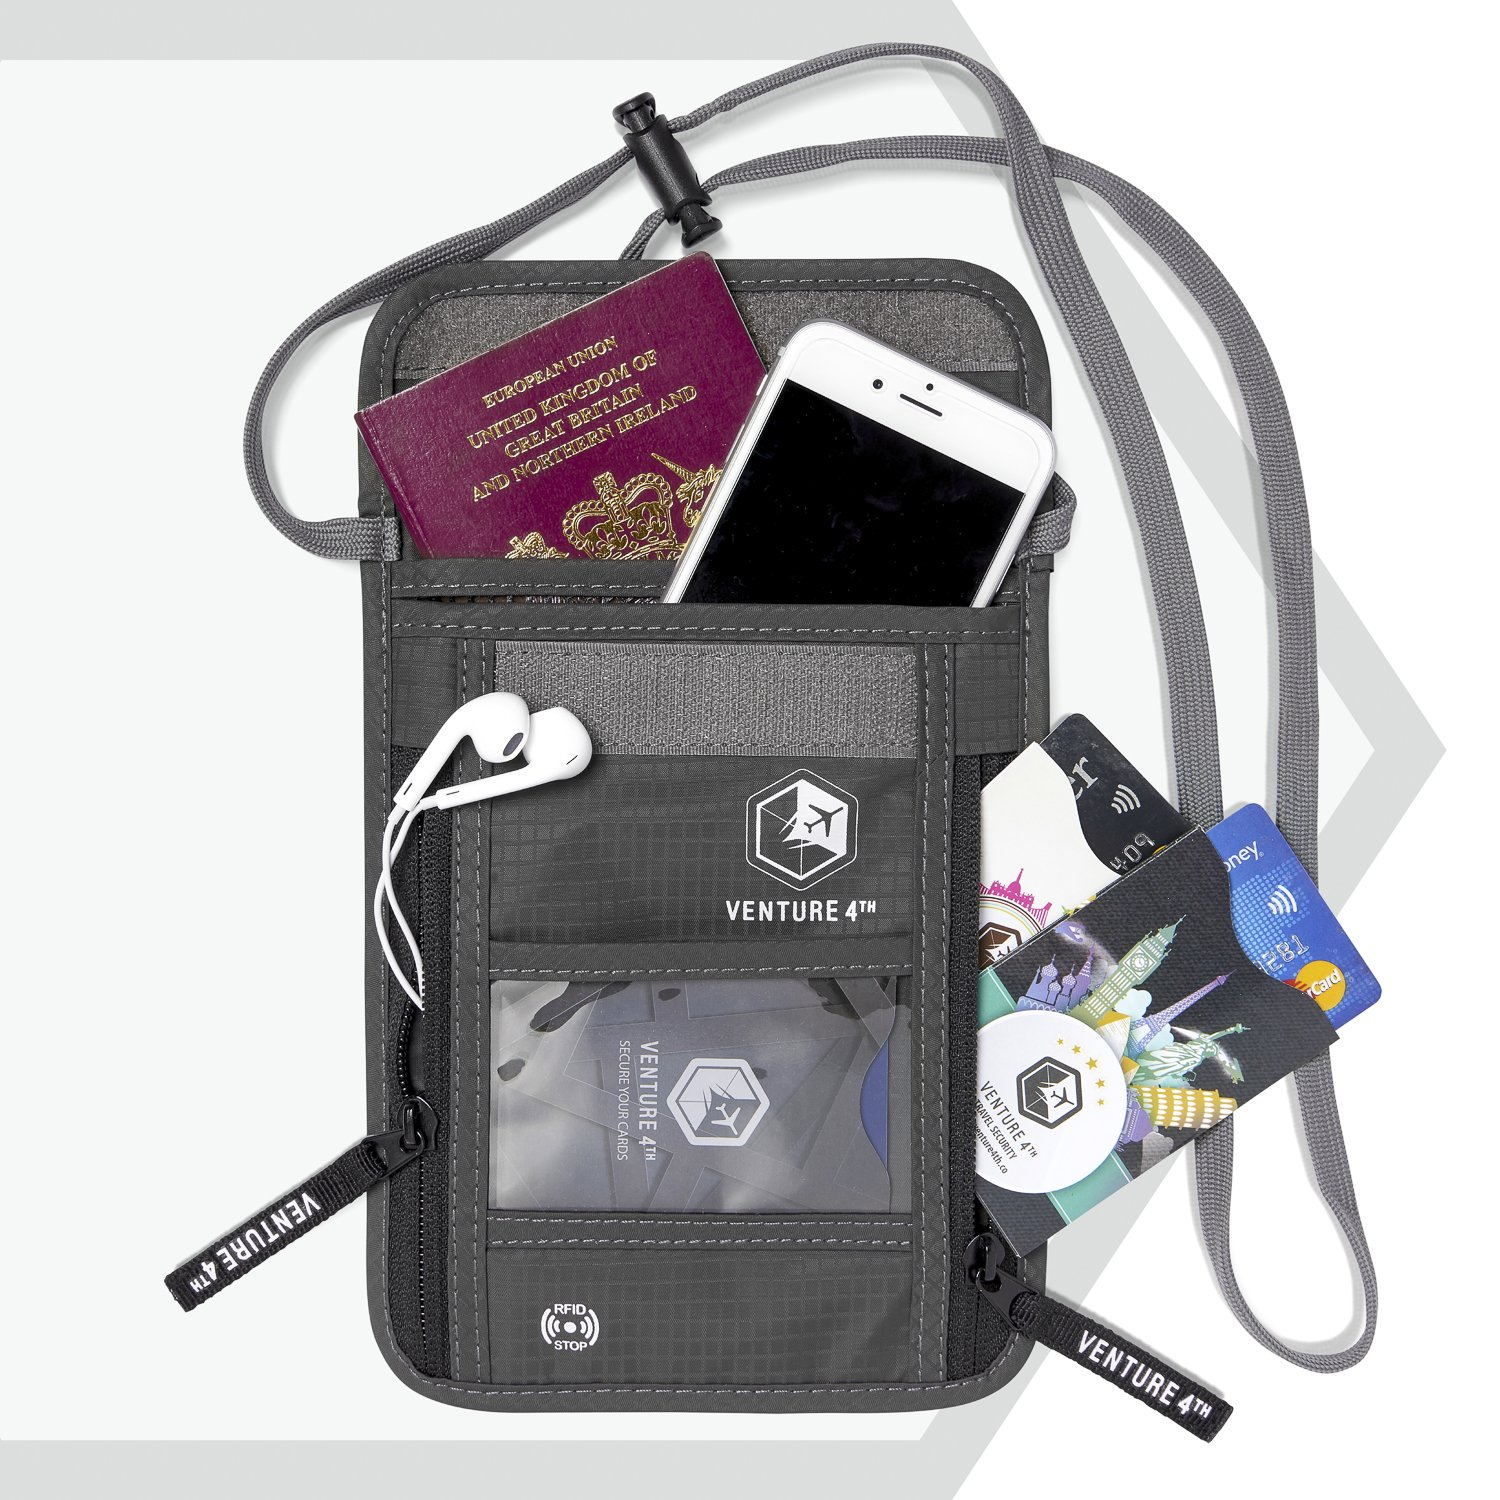 Venture 4th Travel Neck Pouch With RFID Blocking - Travel Wallet Passport Holder (Grey) by VENTURE 4TH (Image #2)